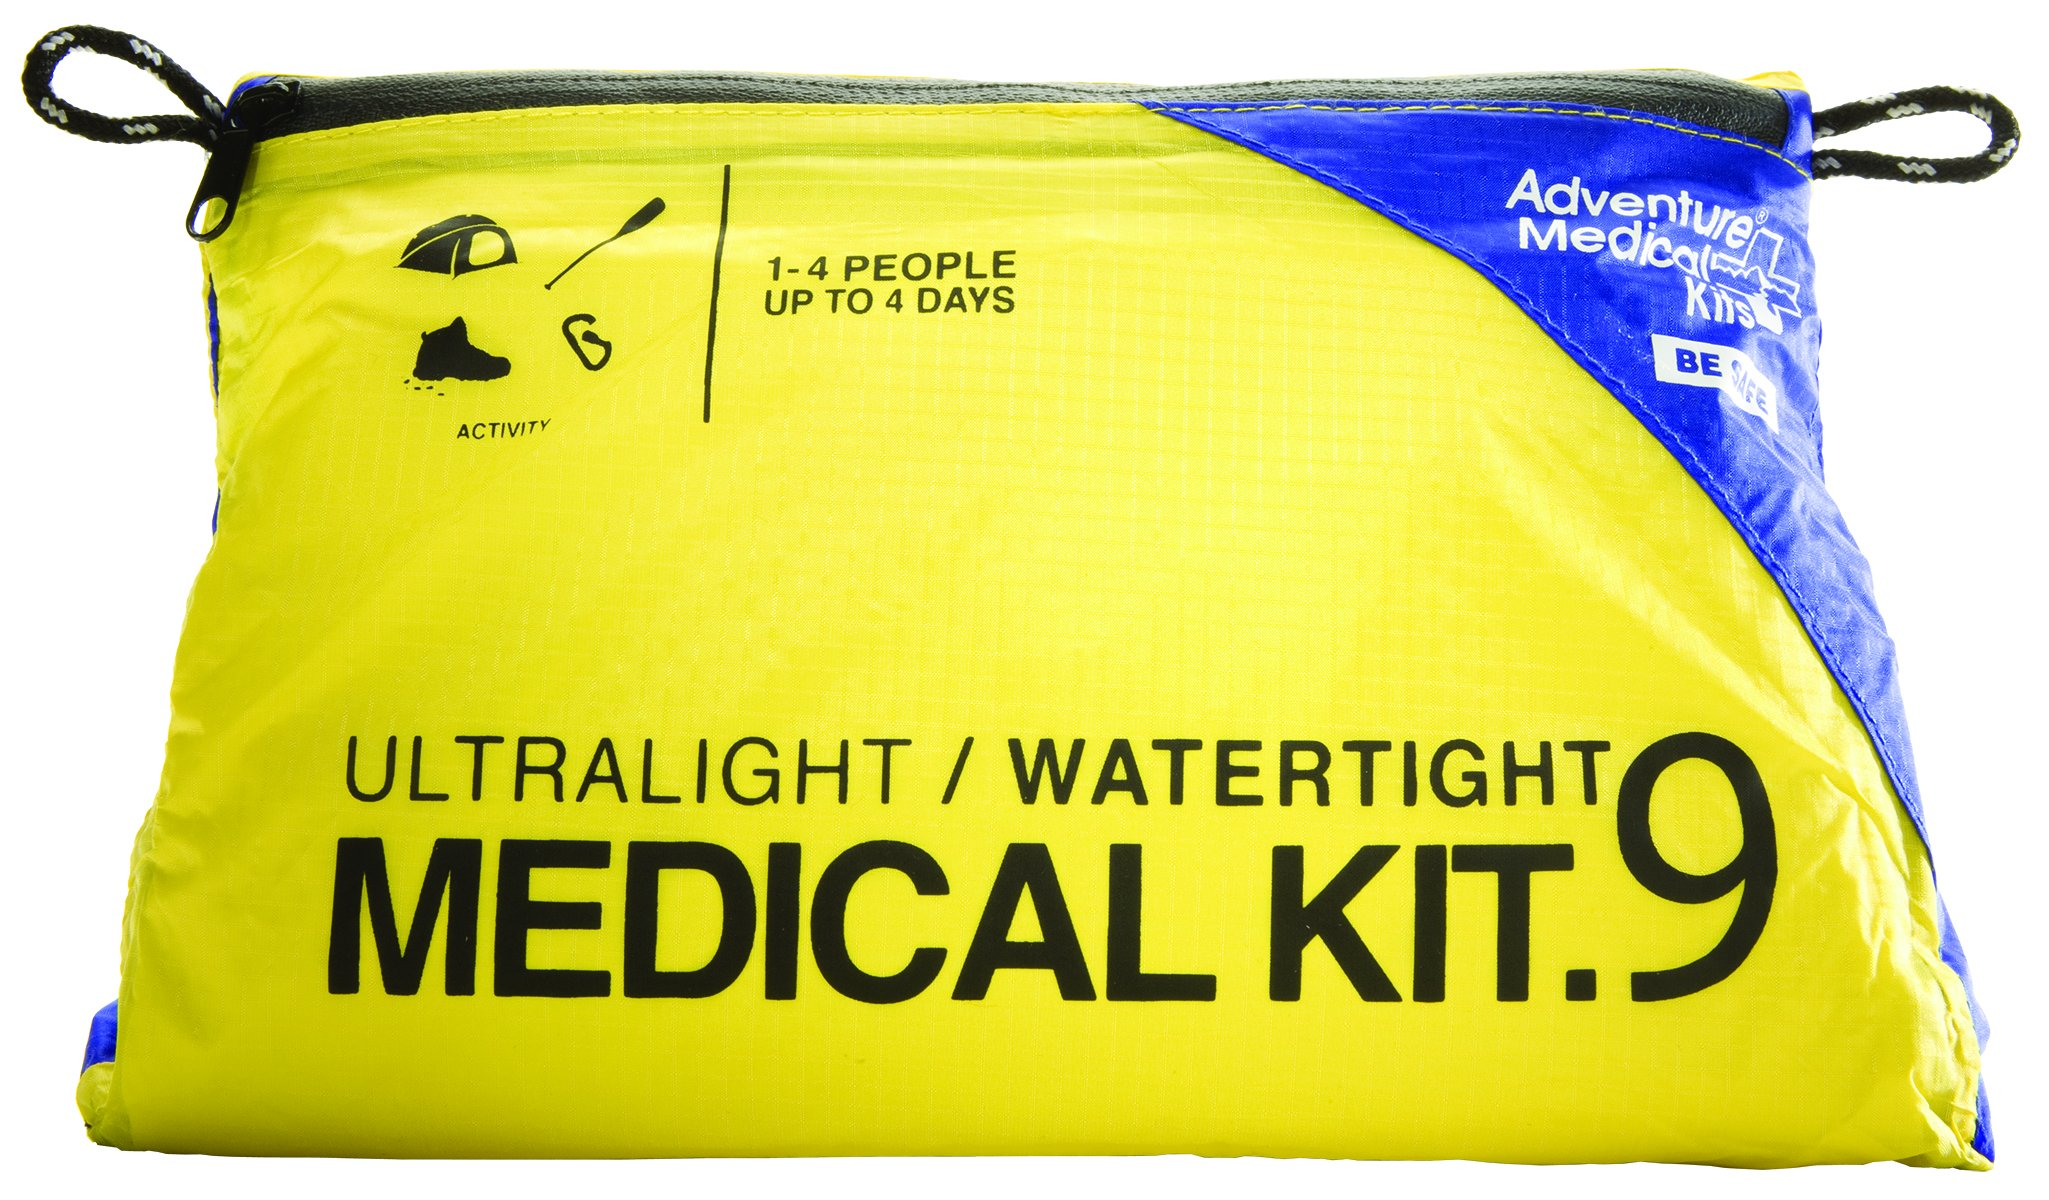 Adventure Medical Kits Ultralight and Watertight .9 First Aid Kit by Adventure Medical Kits (Image #3)